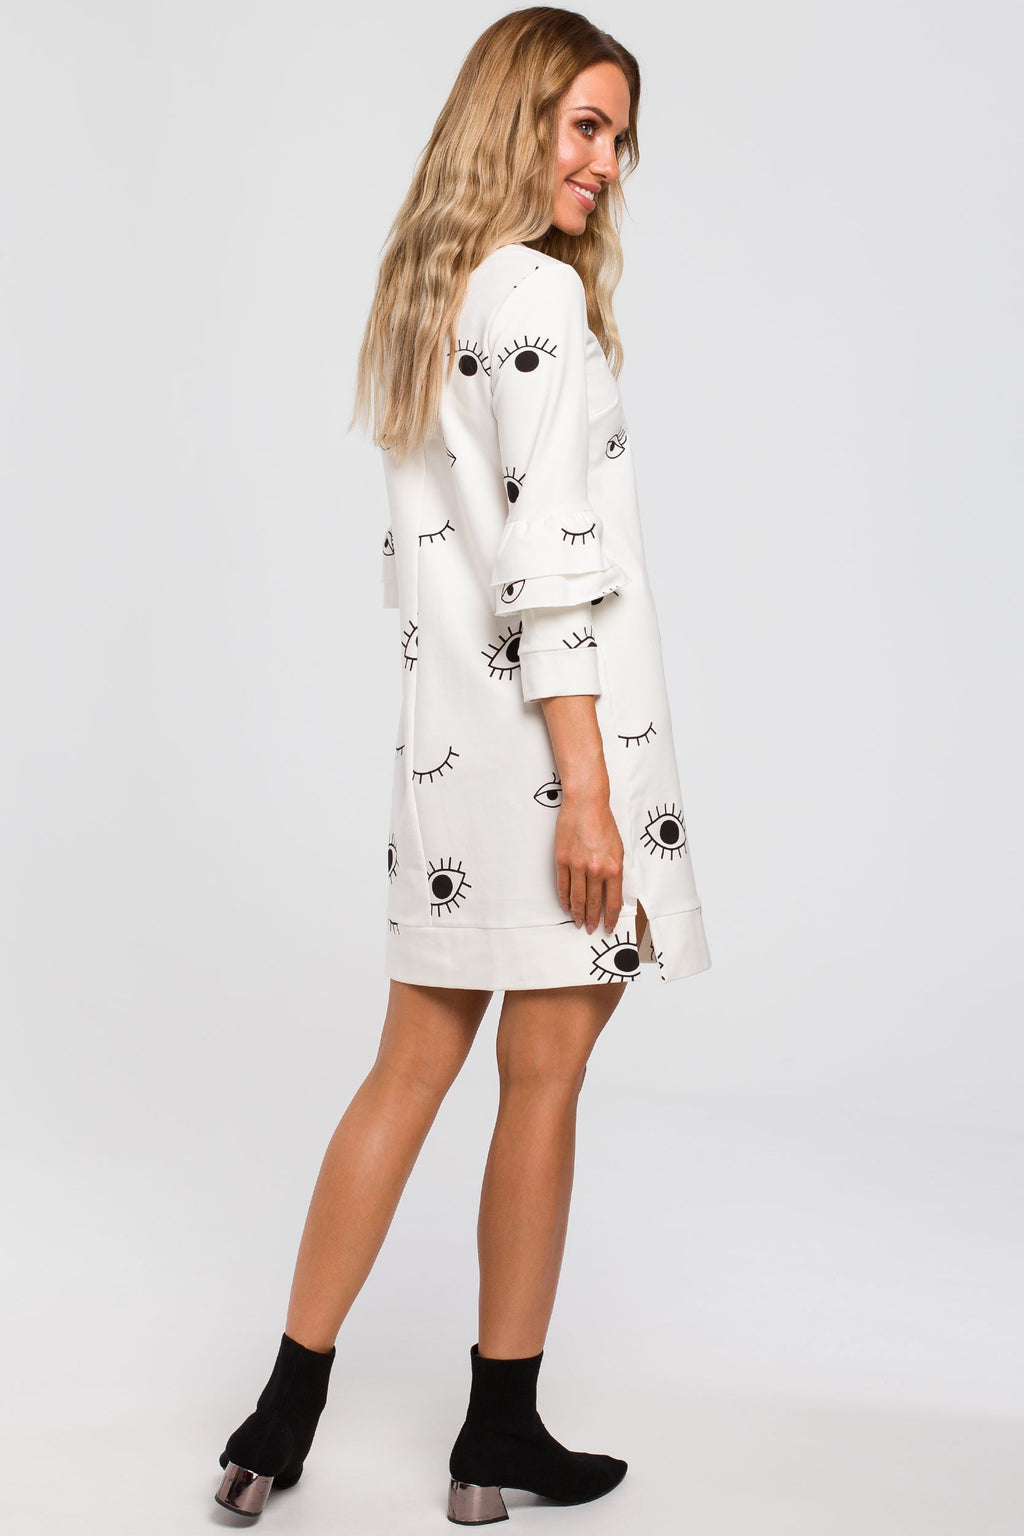 Eye Print A Line Ecru Dress With Ruffle Sleeves - So Chic Boutique